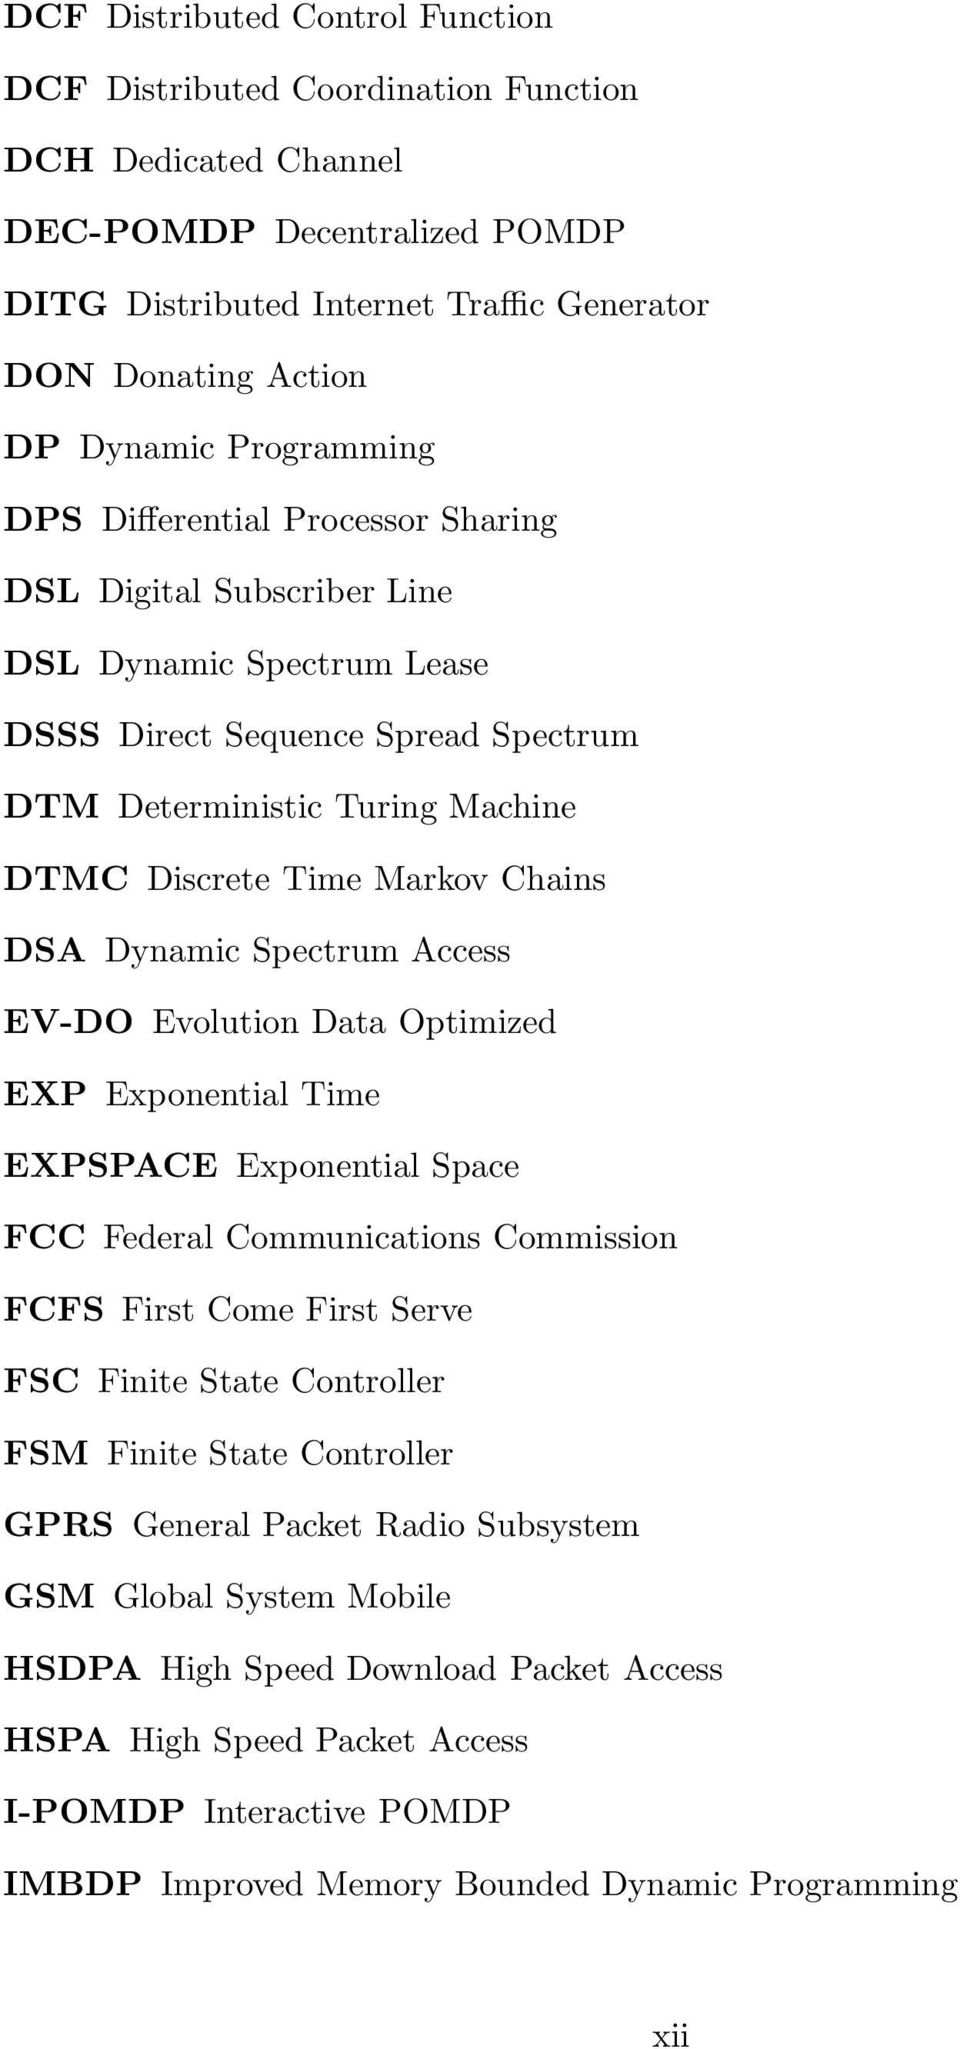 Chains DSA Dynamic Spectrum Access EV-DO Evolution Data Optimized EXP Exponential Time EXPSPACE Exponential Space FCC Federal Communications Commission FCFS First Come First Serve FSC Finite State